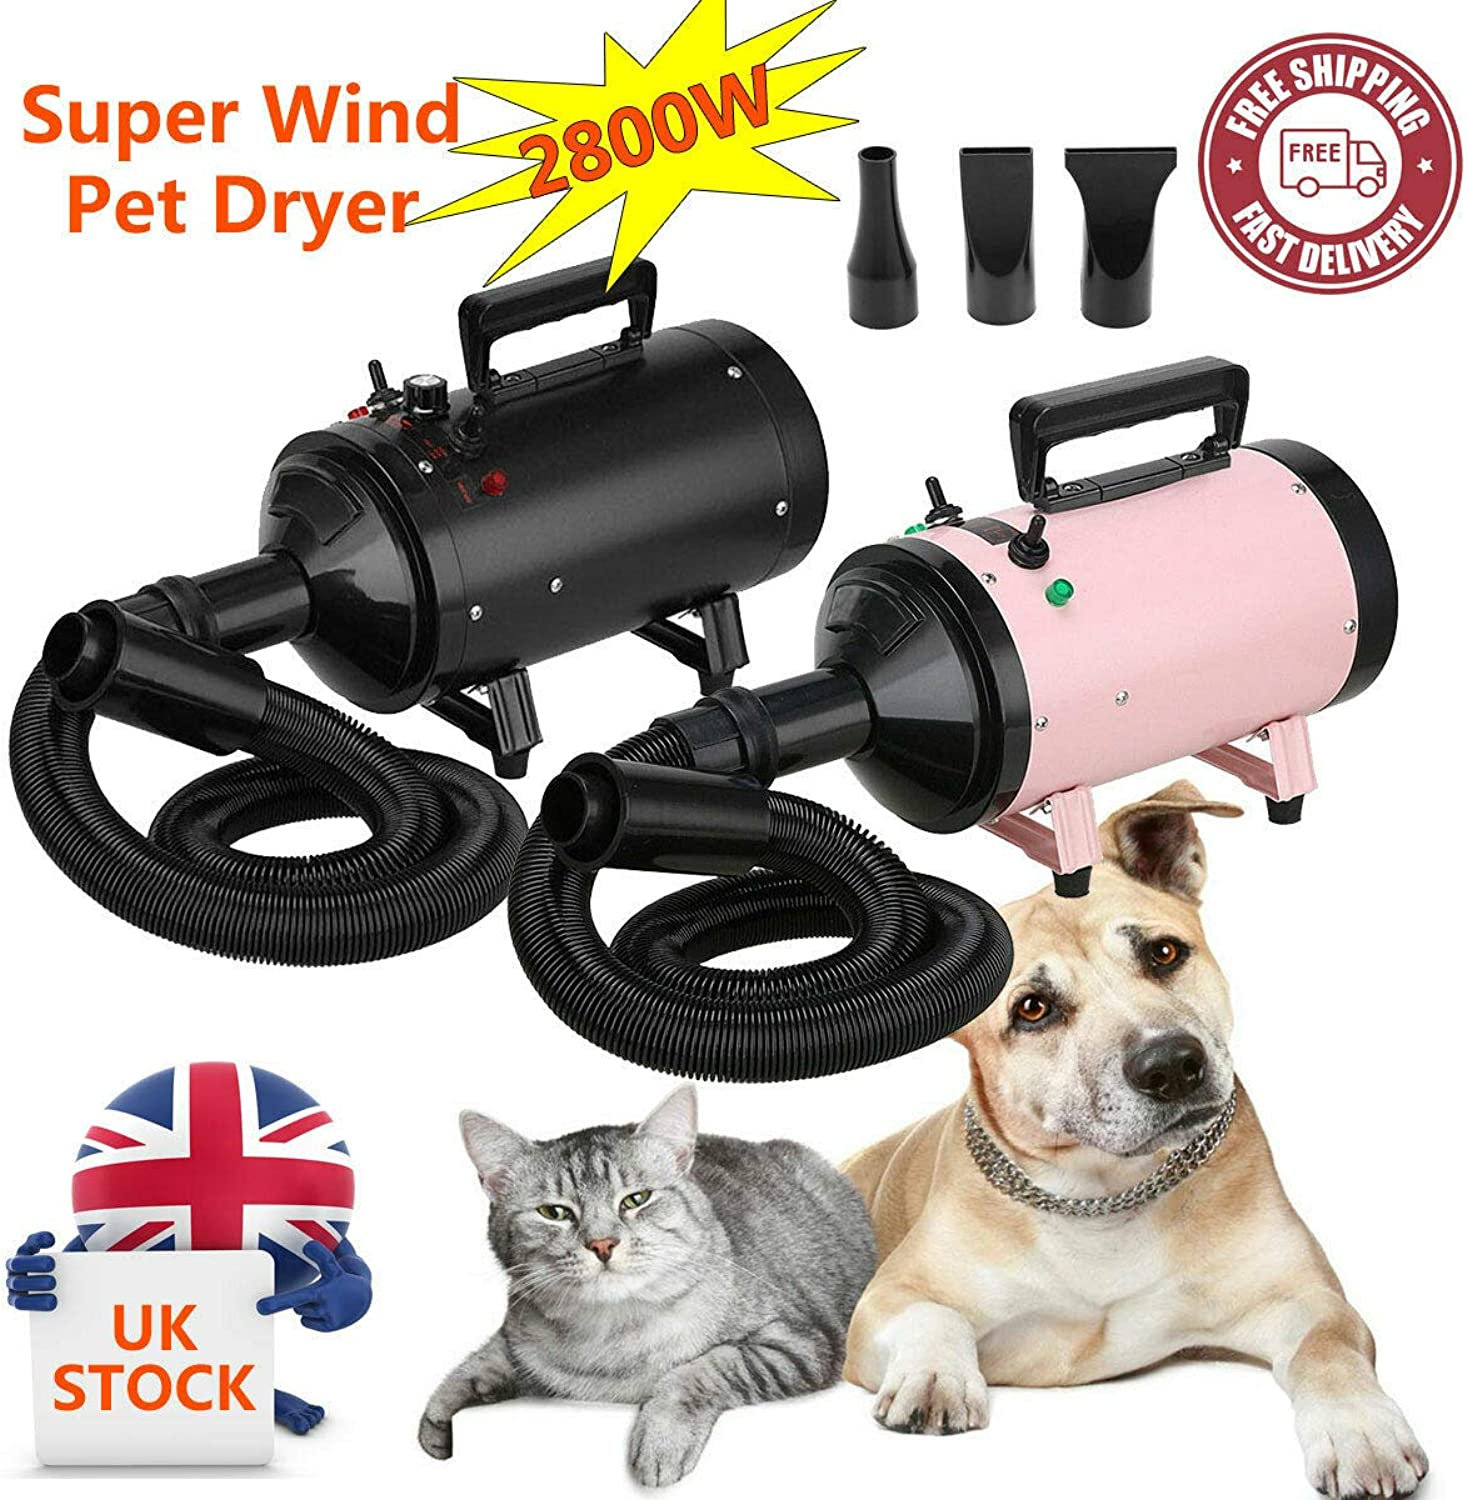 Dog Cat Pet Dryer Hair Grooming Heater Blaster Blower Hairdryer Low Noise 2 Wind Speed Safety Heater 2.5M Flexible Hose with 3 Nozzles 2800W Pink